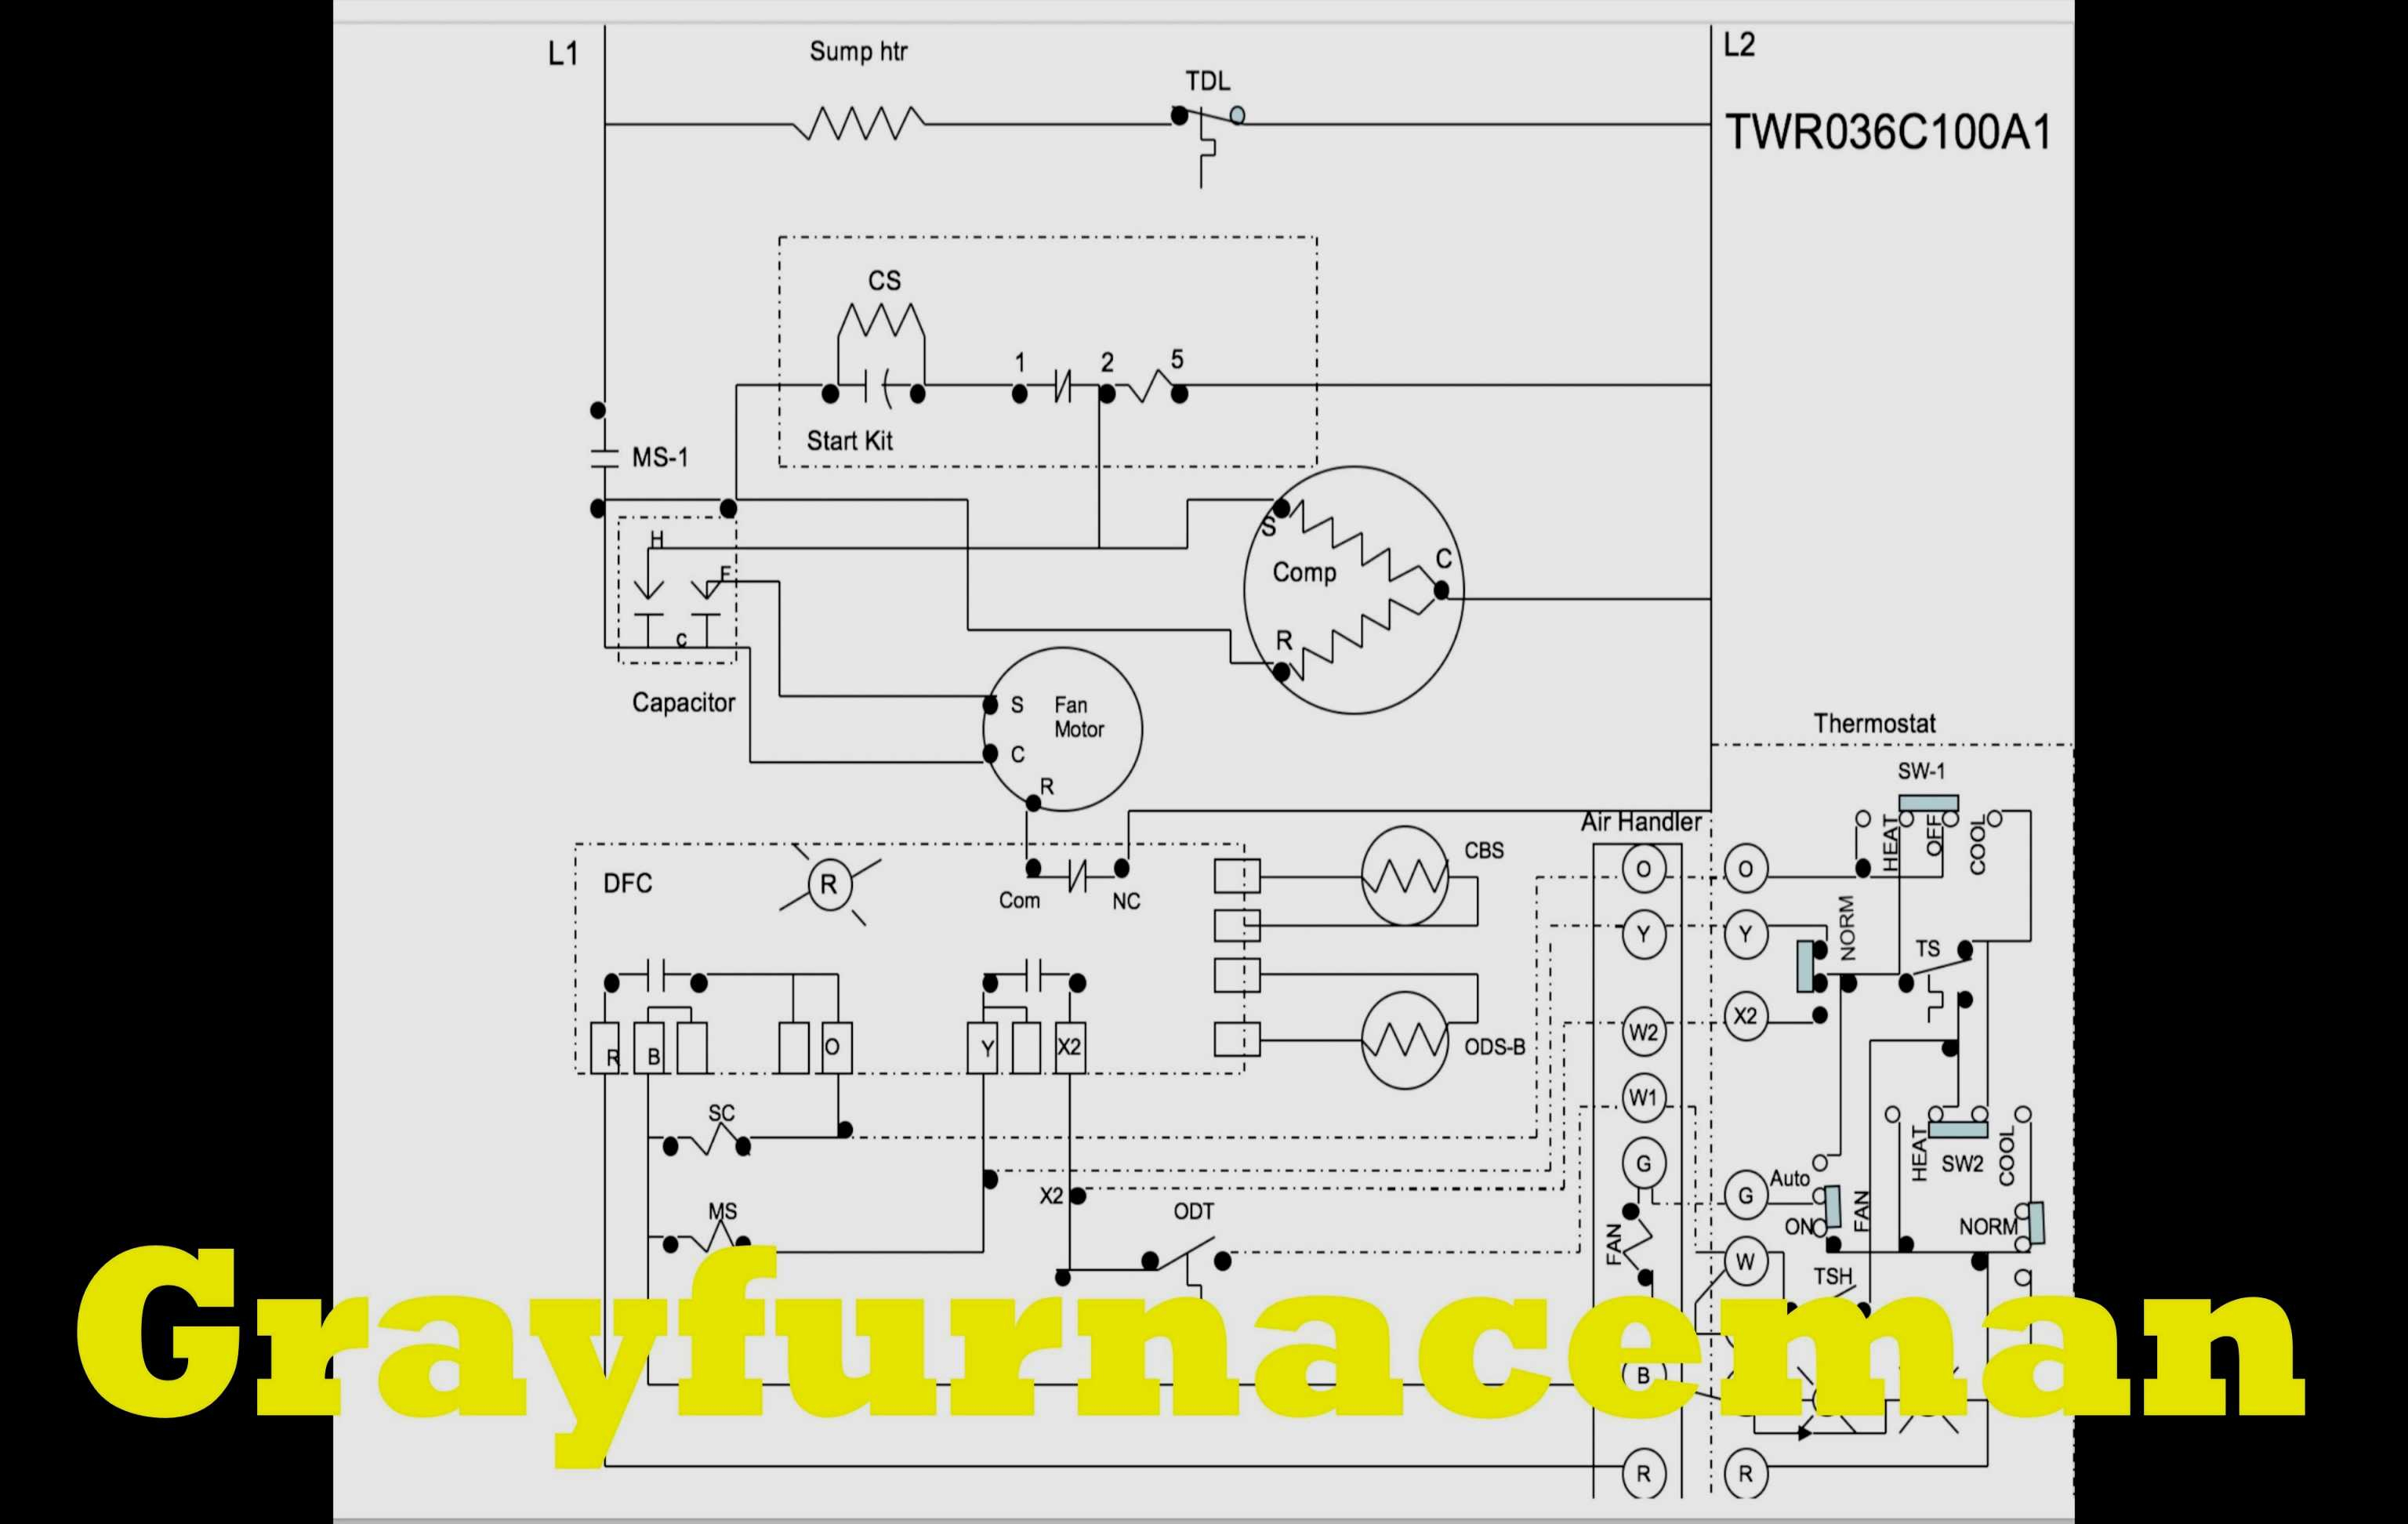 Nest Wiring Diagram Heat Pump Goodman Heat Pump Thermostat Wiring - Nest Thermostat Wiring Diagram For Heat Pump